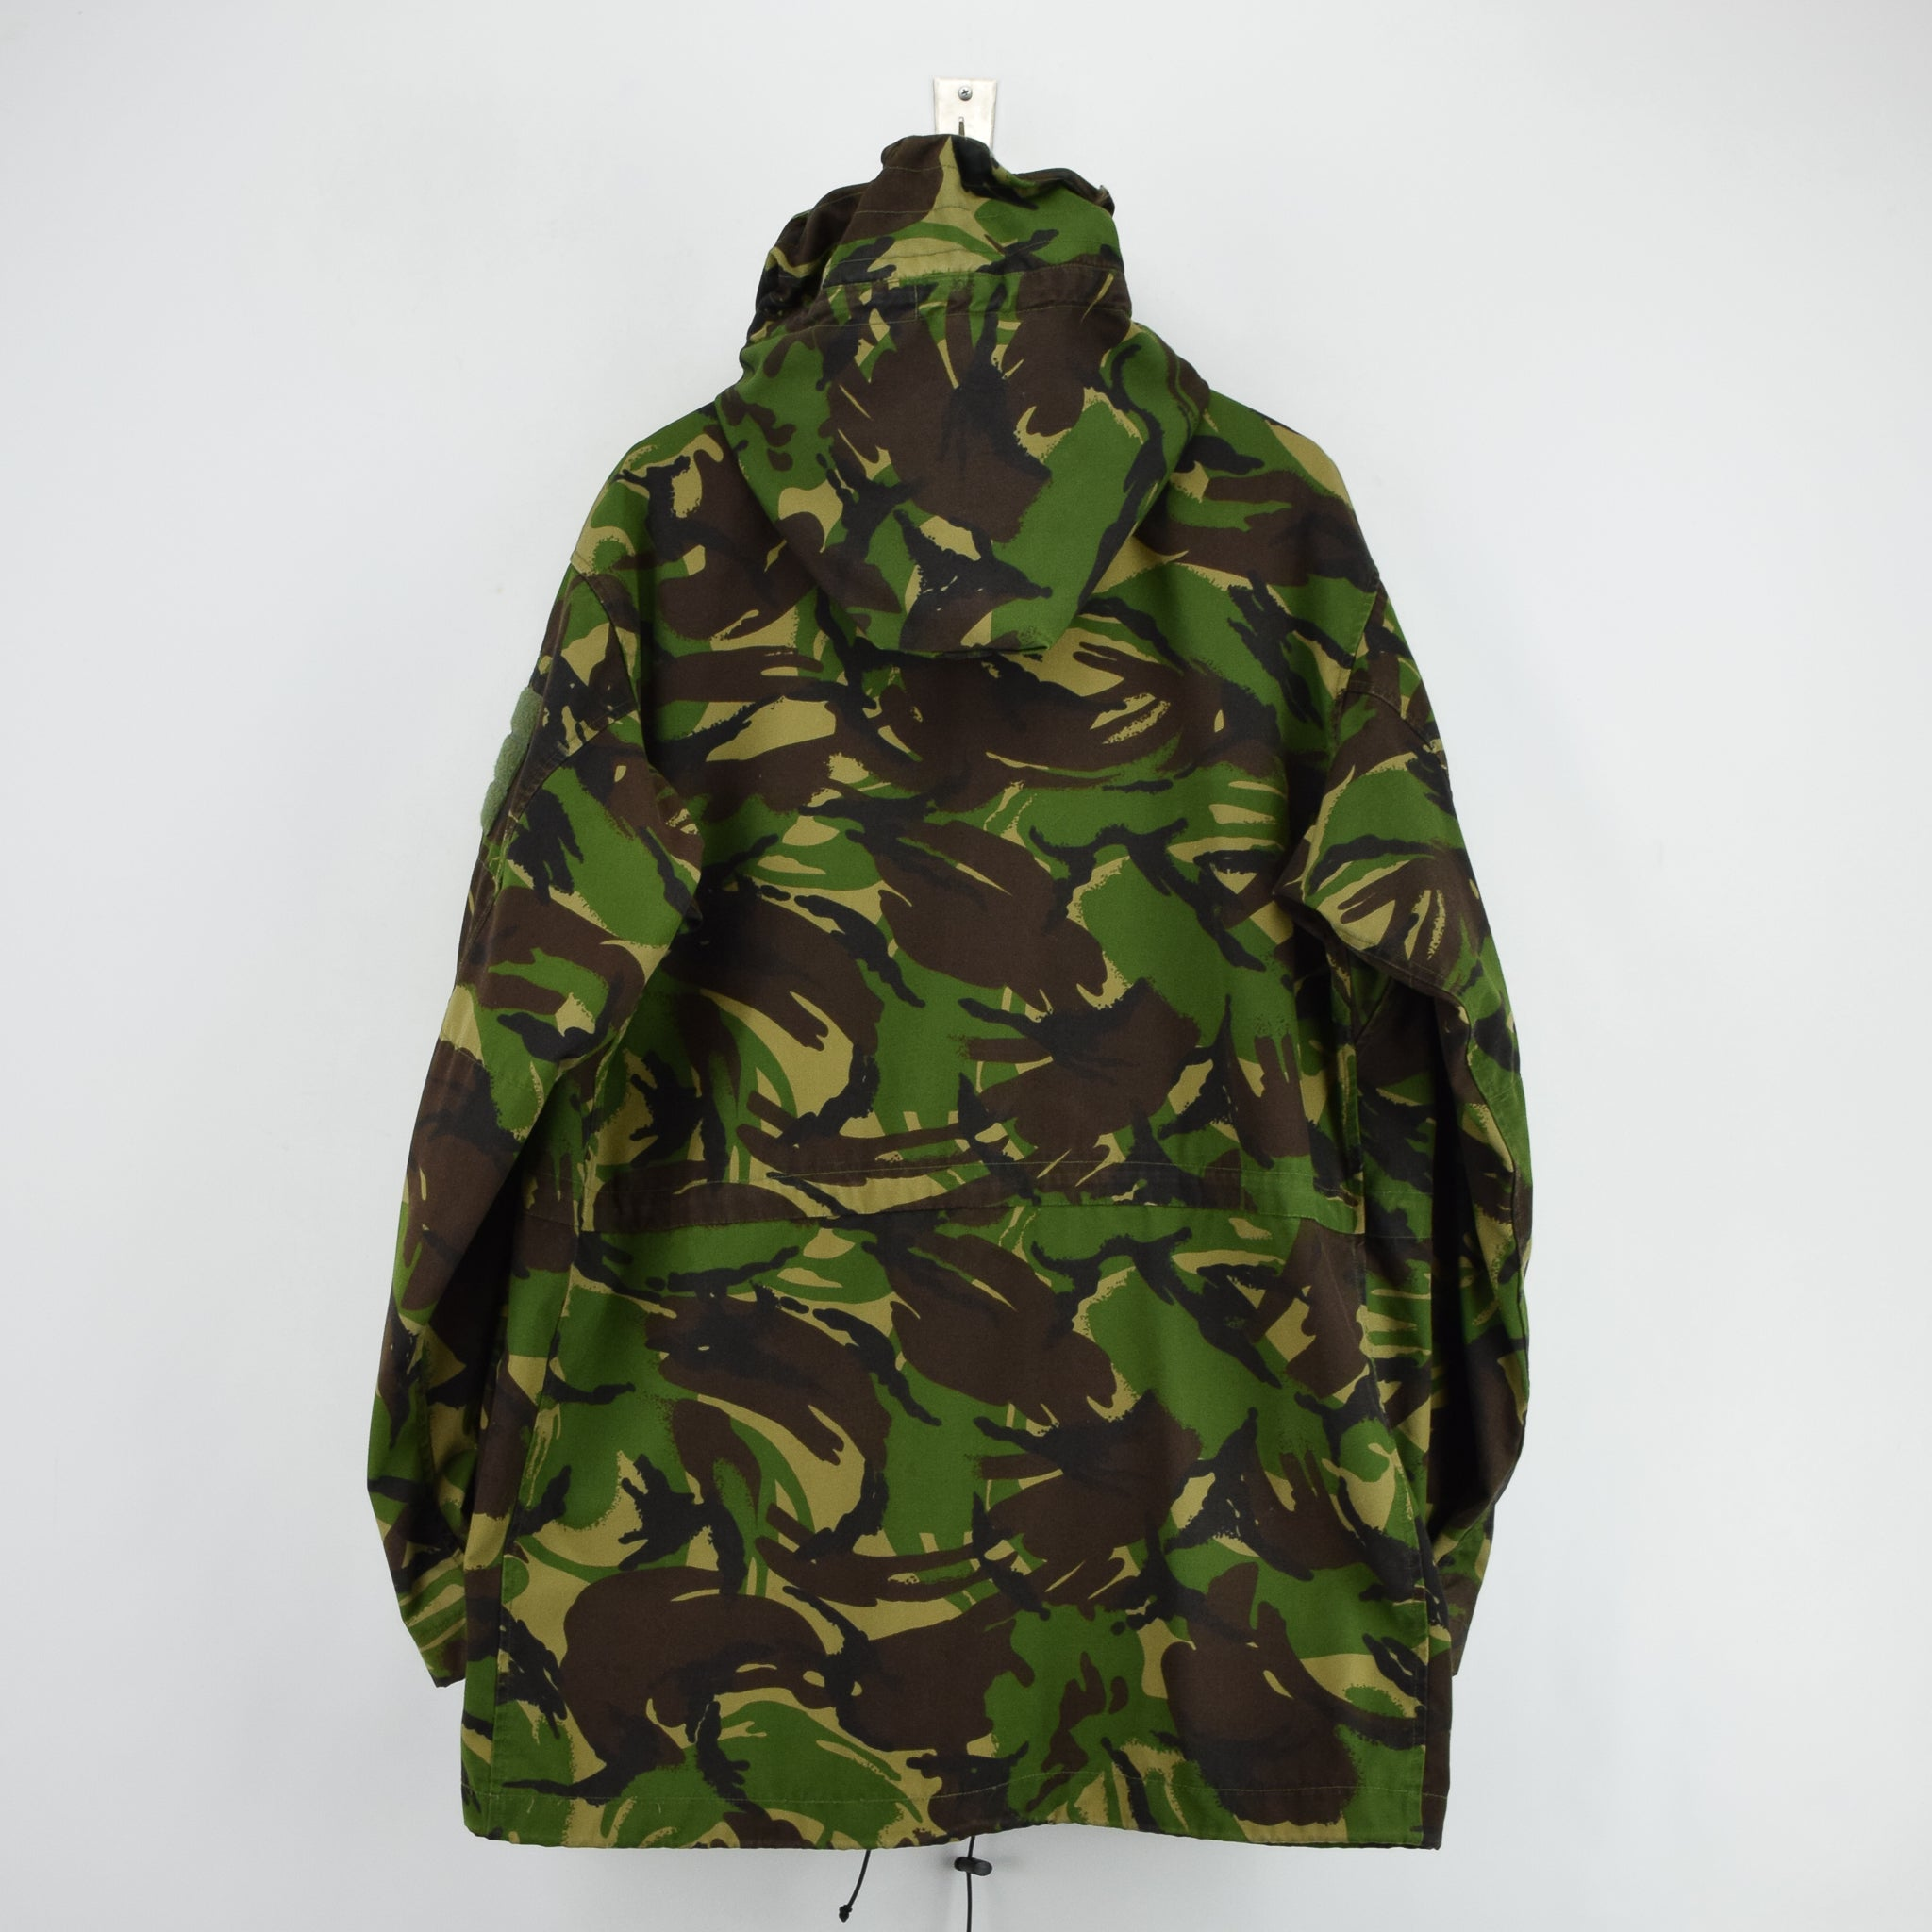 Vintage British Army Windproof Combat Smock Woodland Camo Field Jacket XL / XXL back